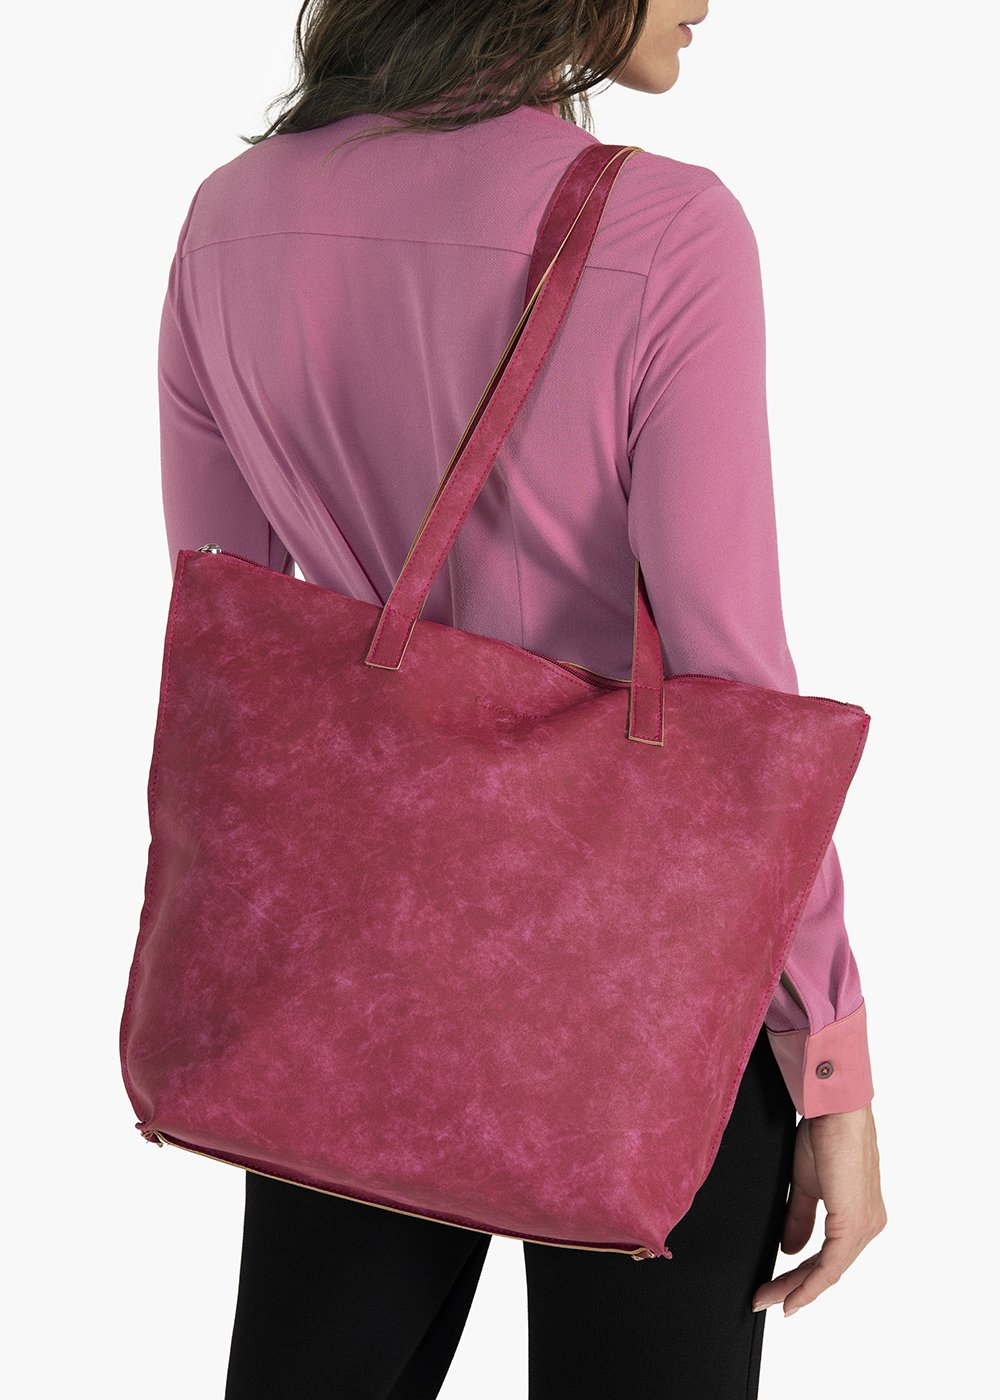 Blasie shopping bag in used effect eco leather with zip closure - Floreale - Woman